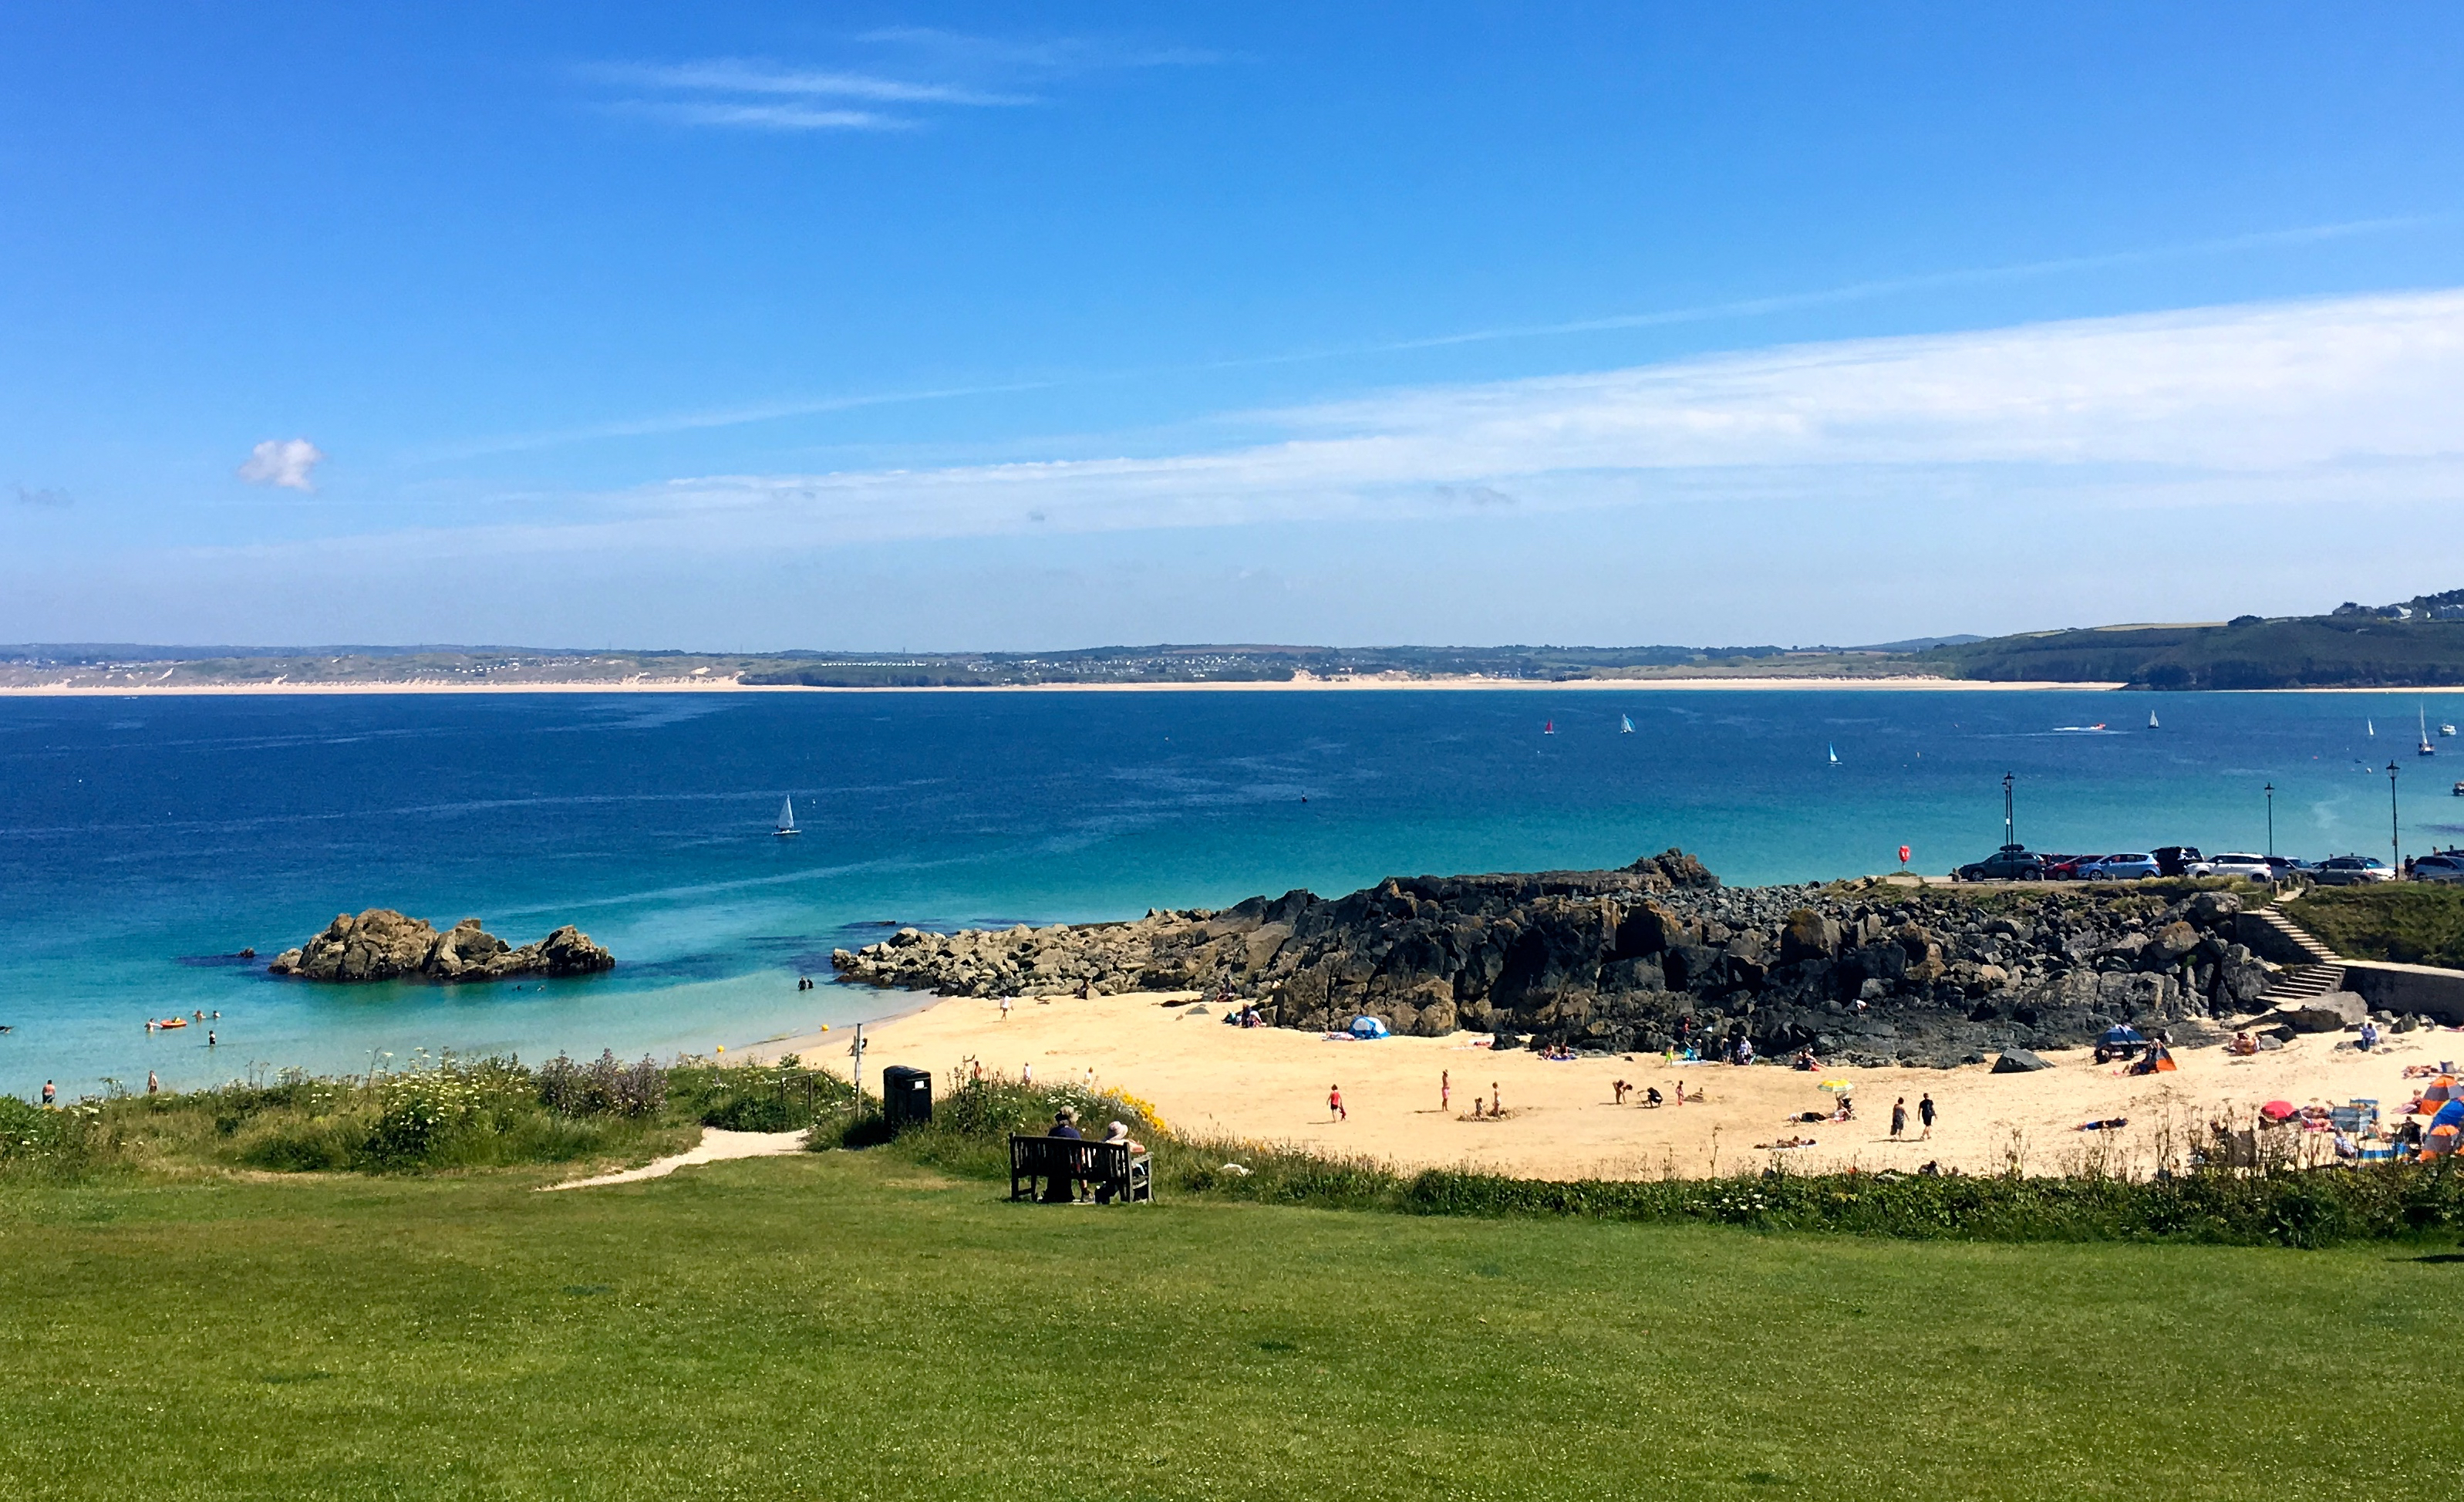 A trip to St Ives in Cornwall